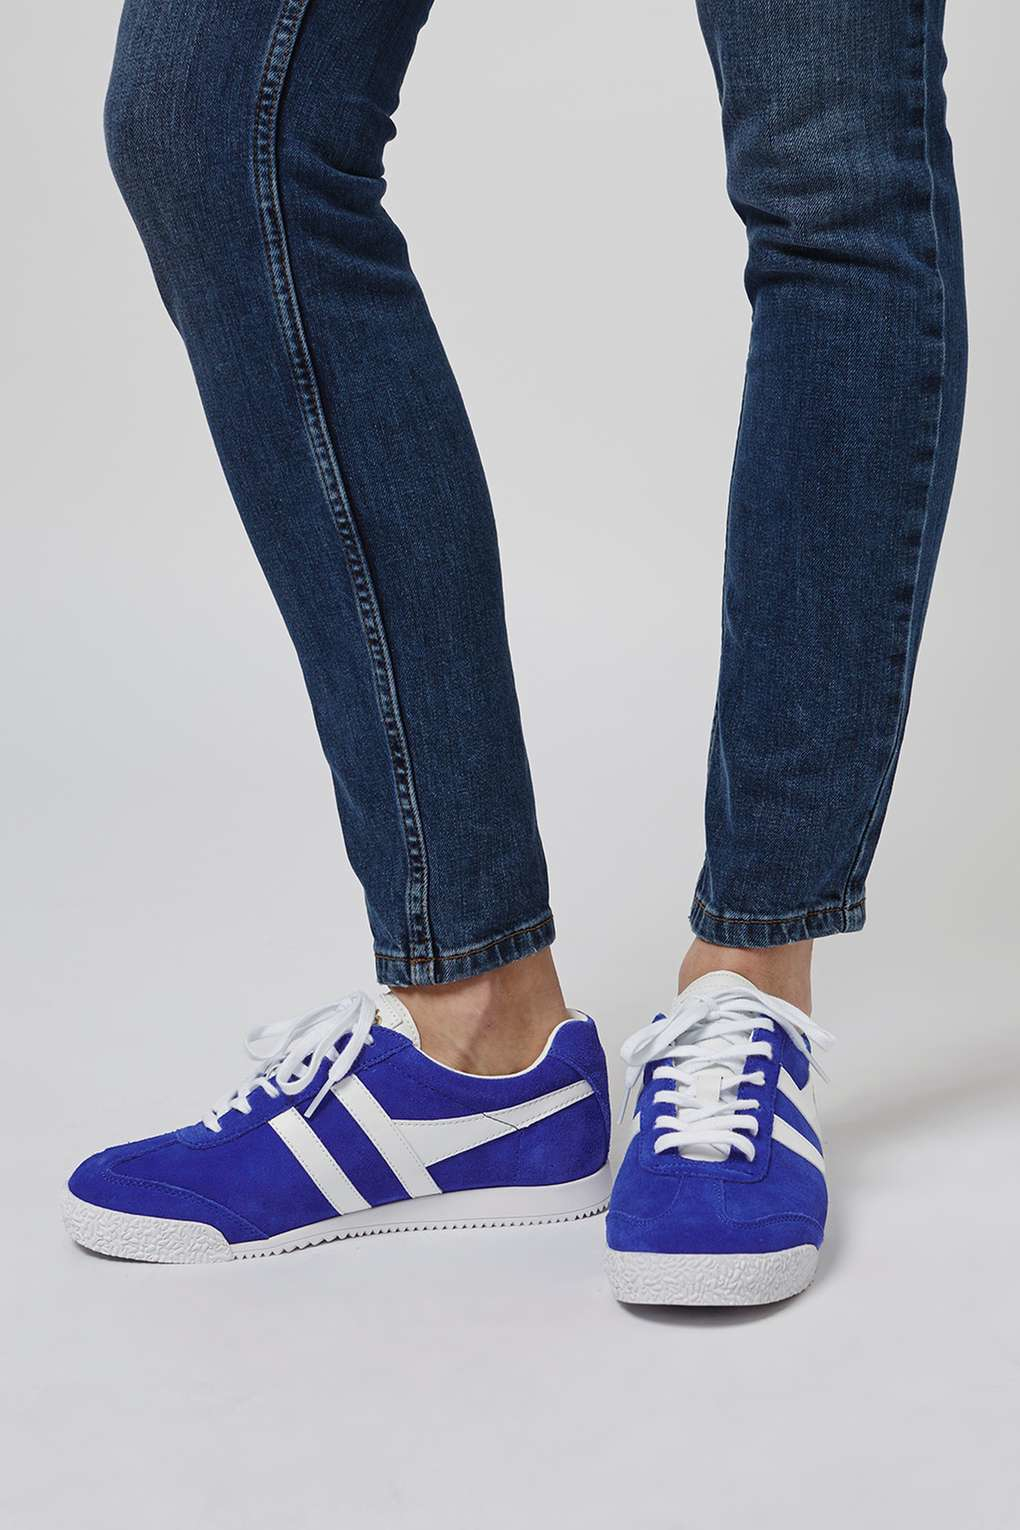 Gola Suede Harrier Trainers in Blue - Lyst